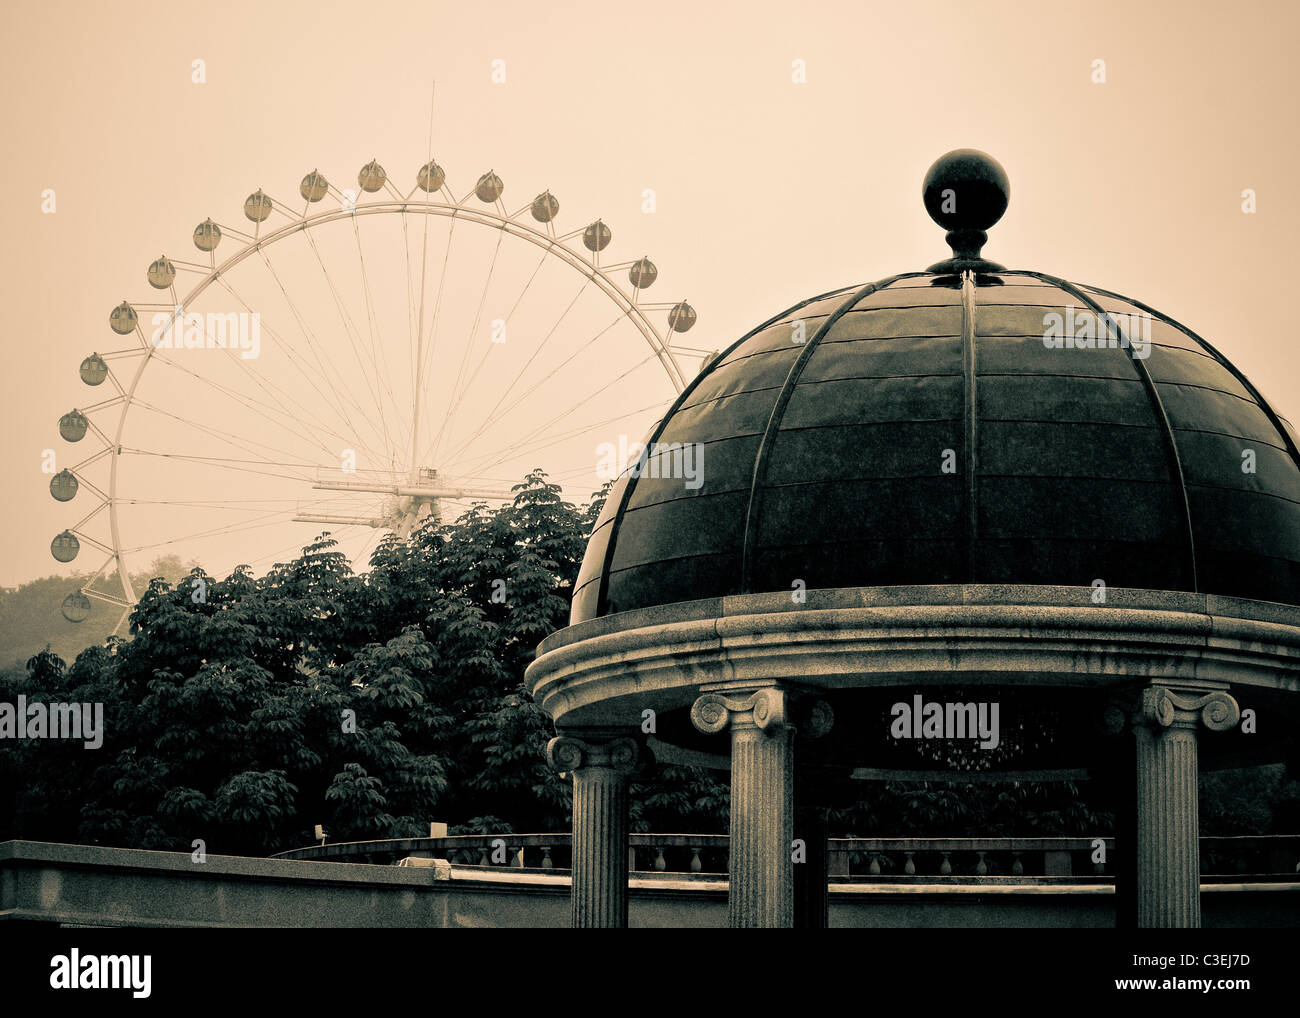 Antiqued pergola in front of a ferris wheel. - Stock Image